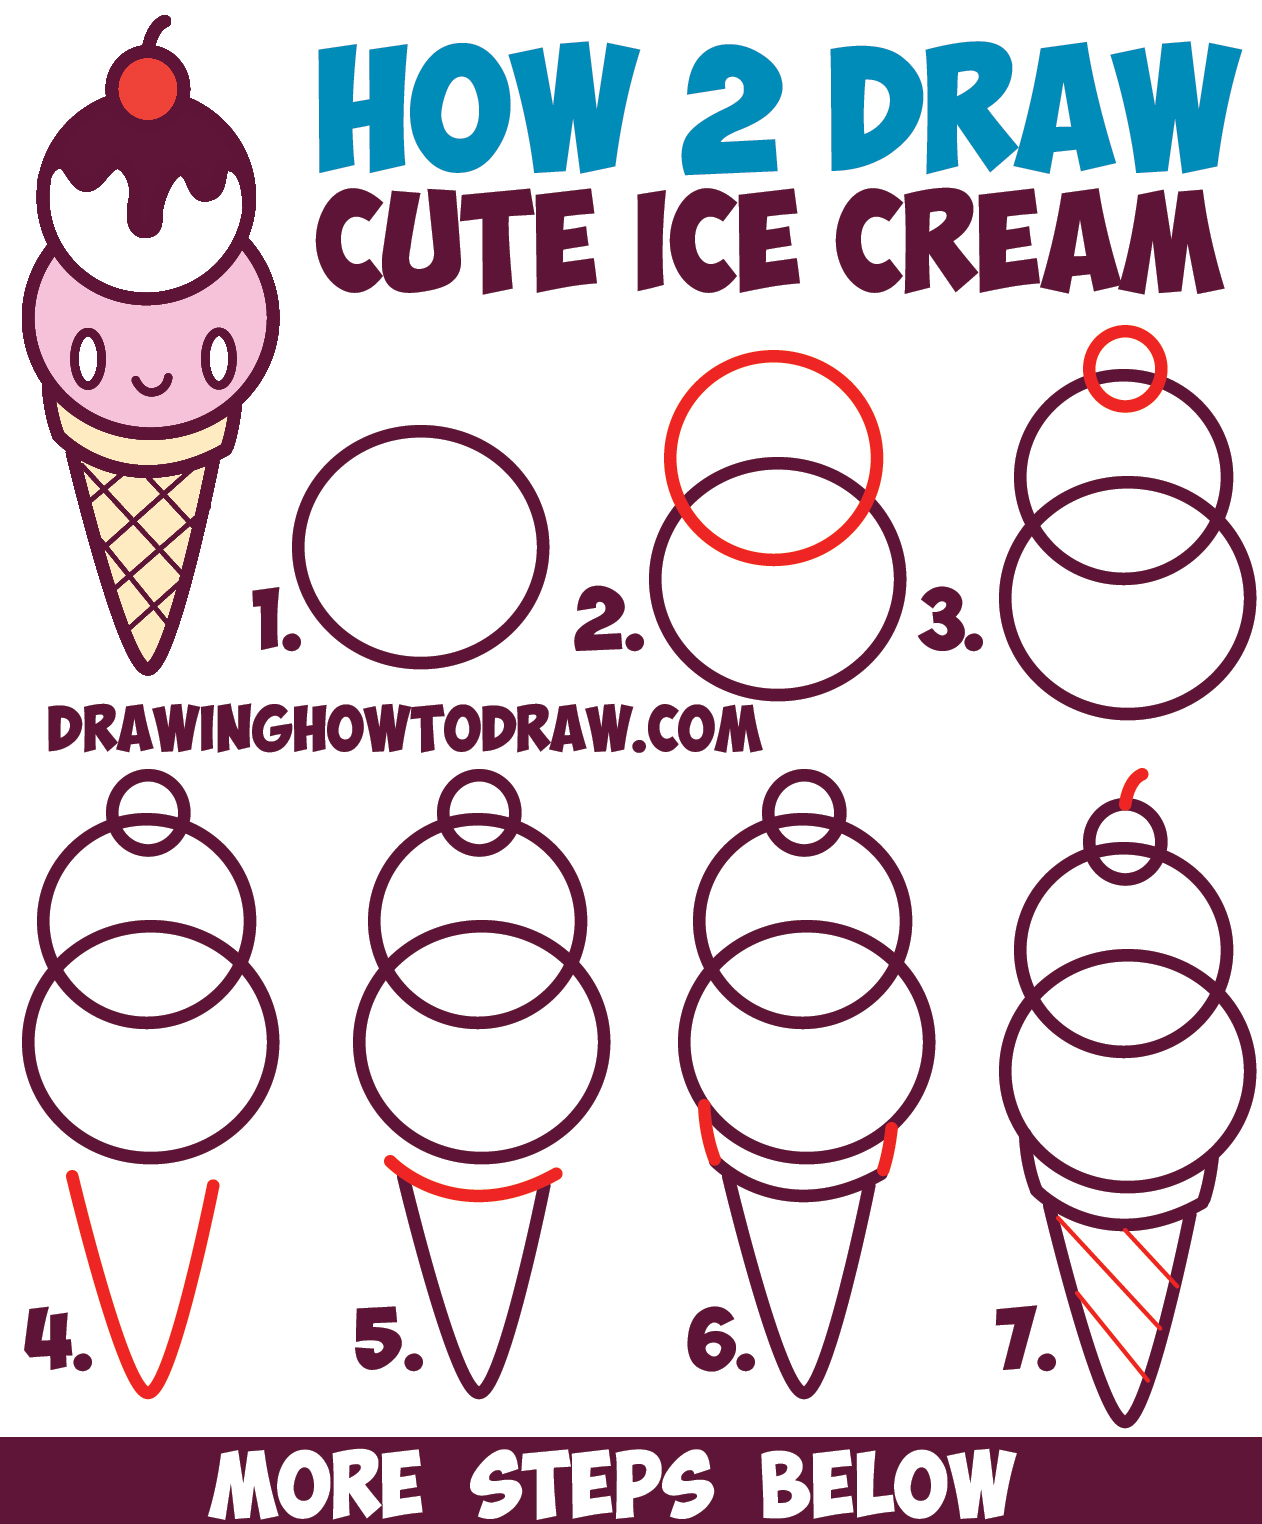 Drawn ice cream beginner step by step To Cream Cute on How